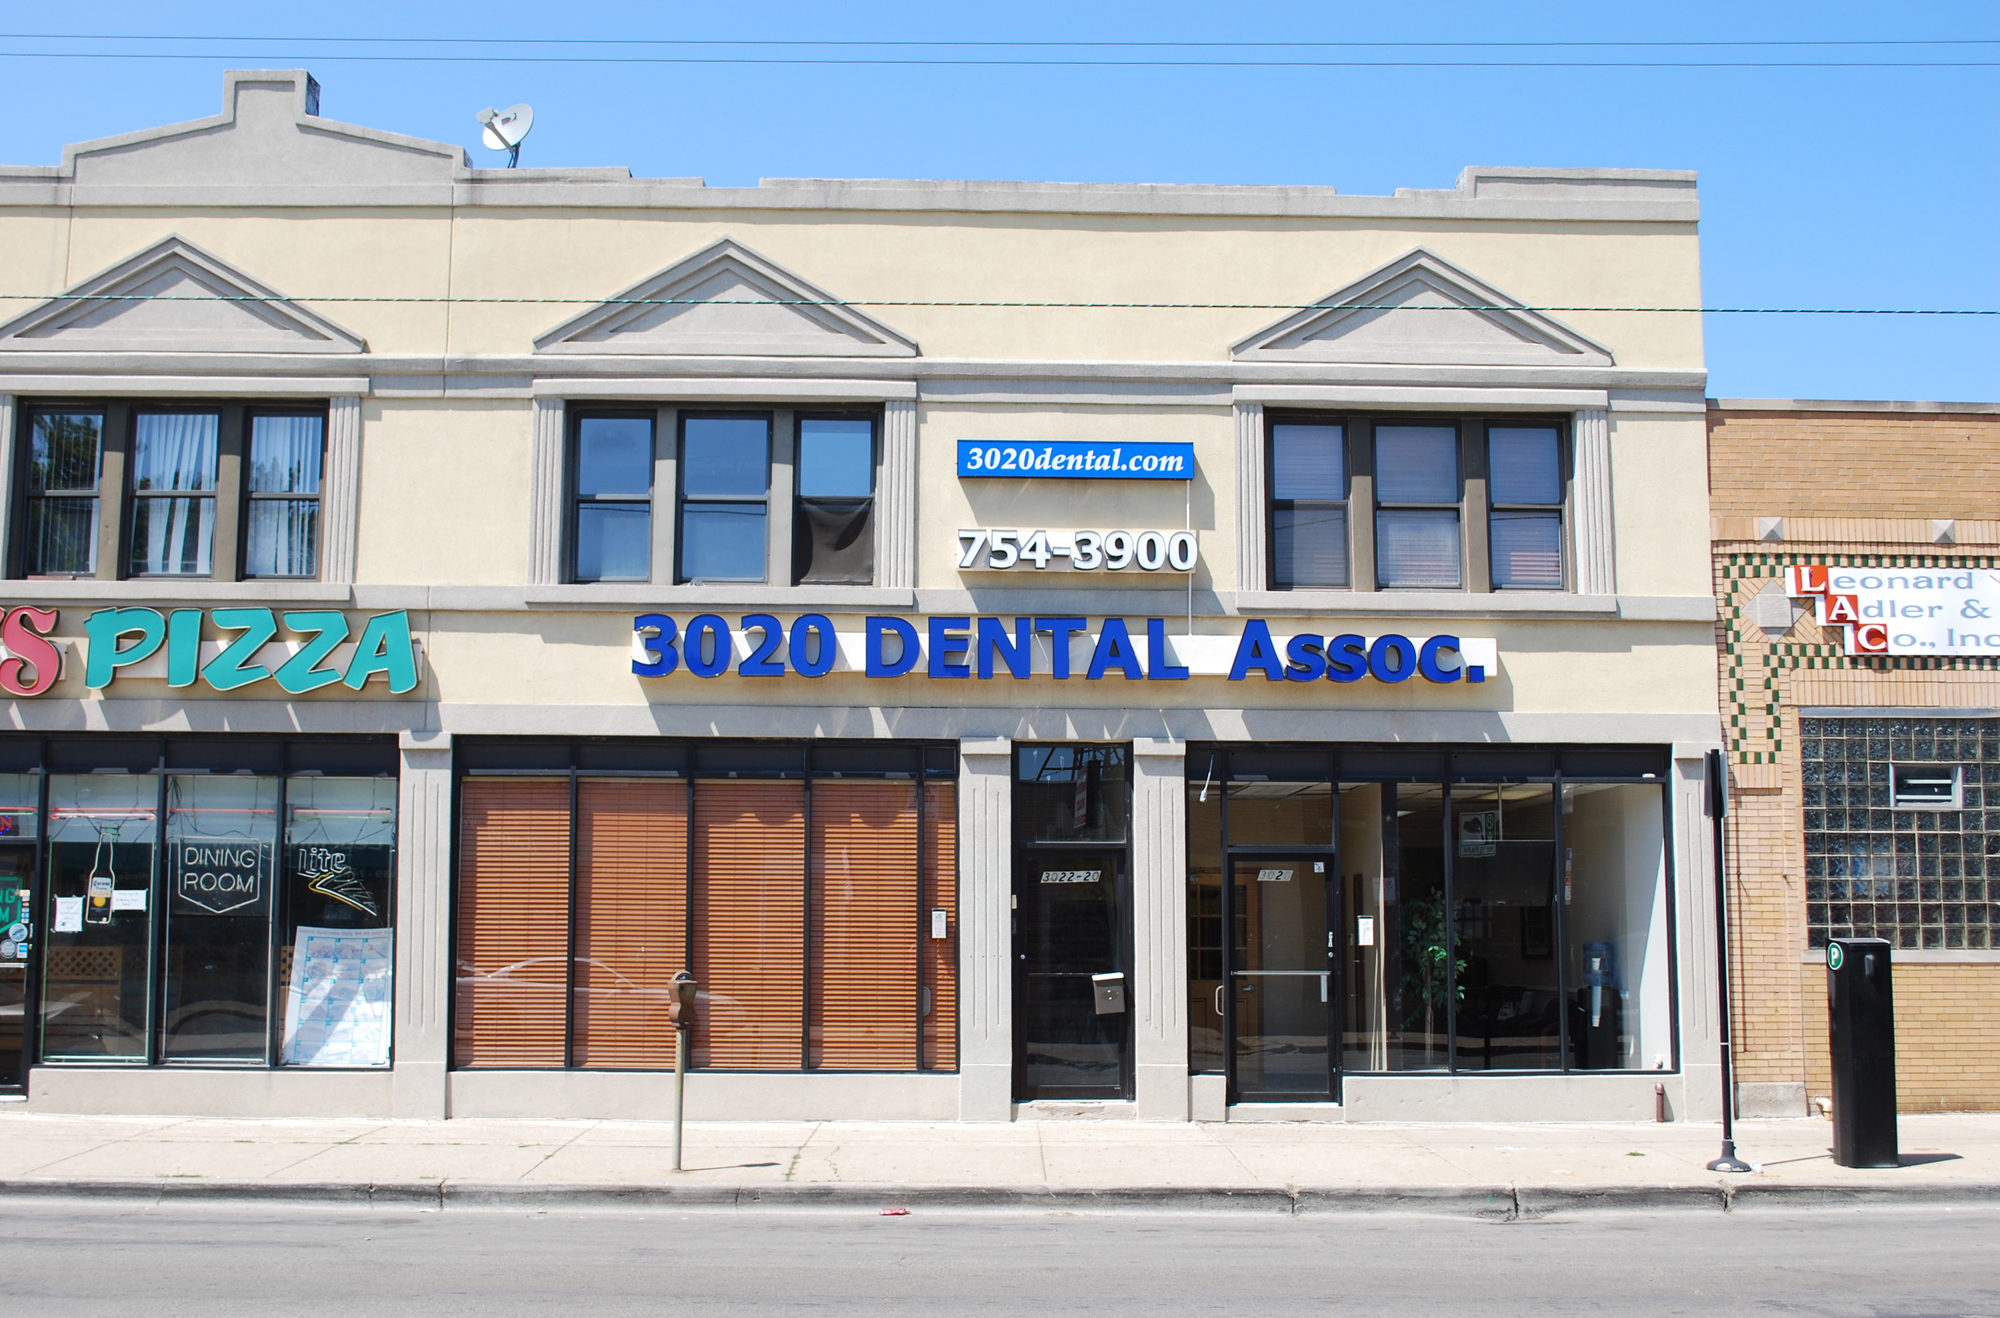 3020 Dental Associates in Chicago IL